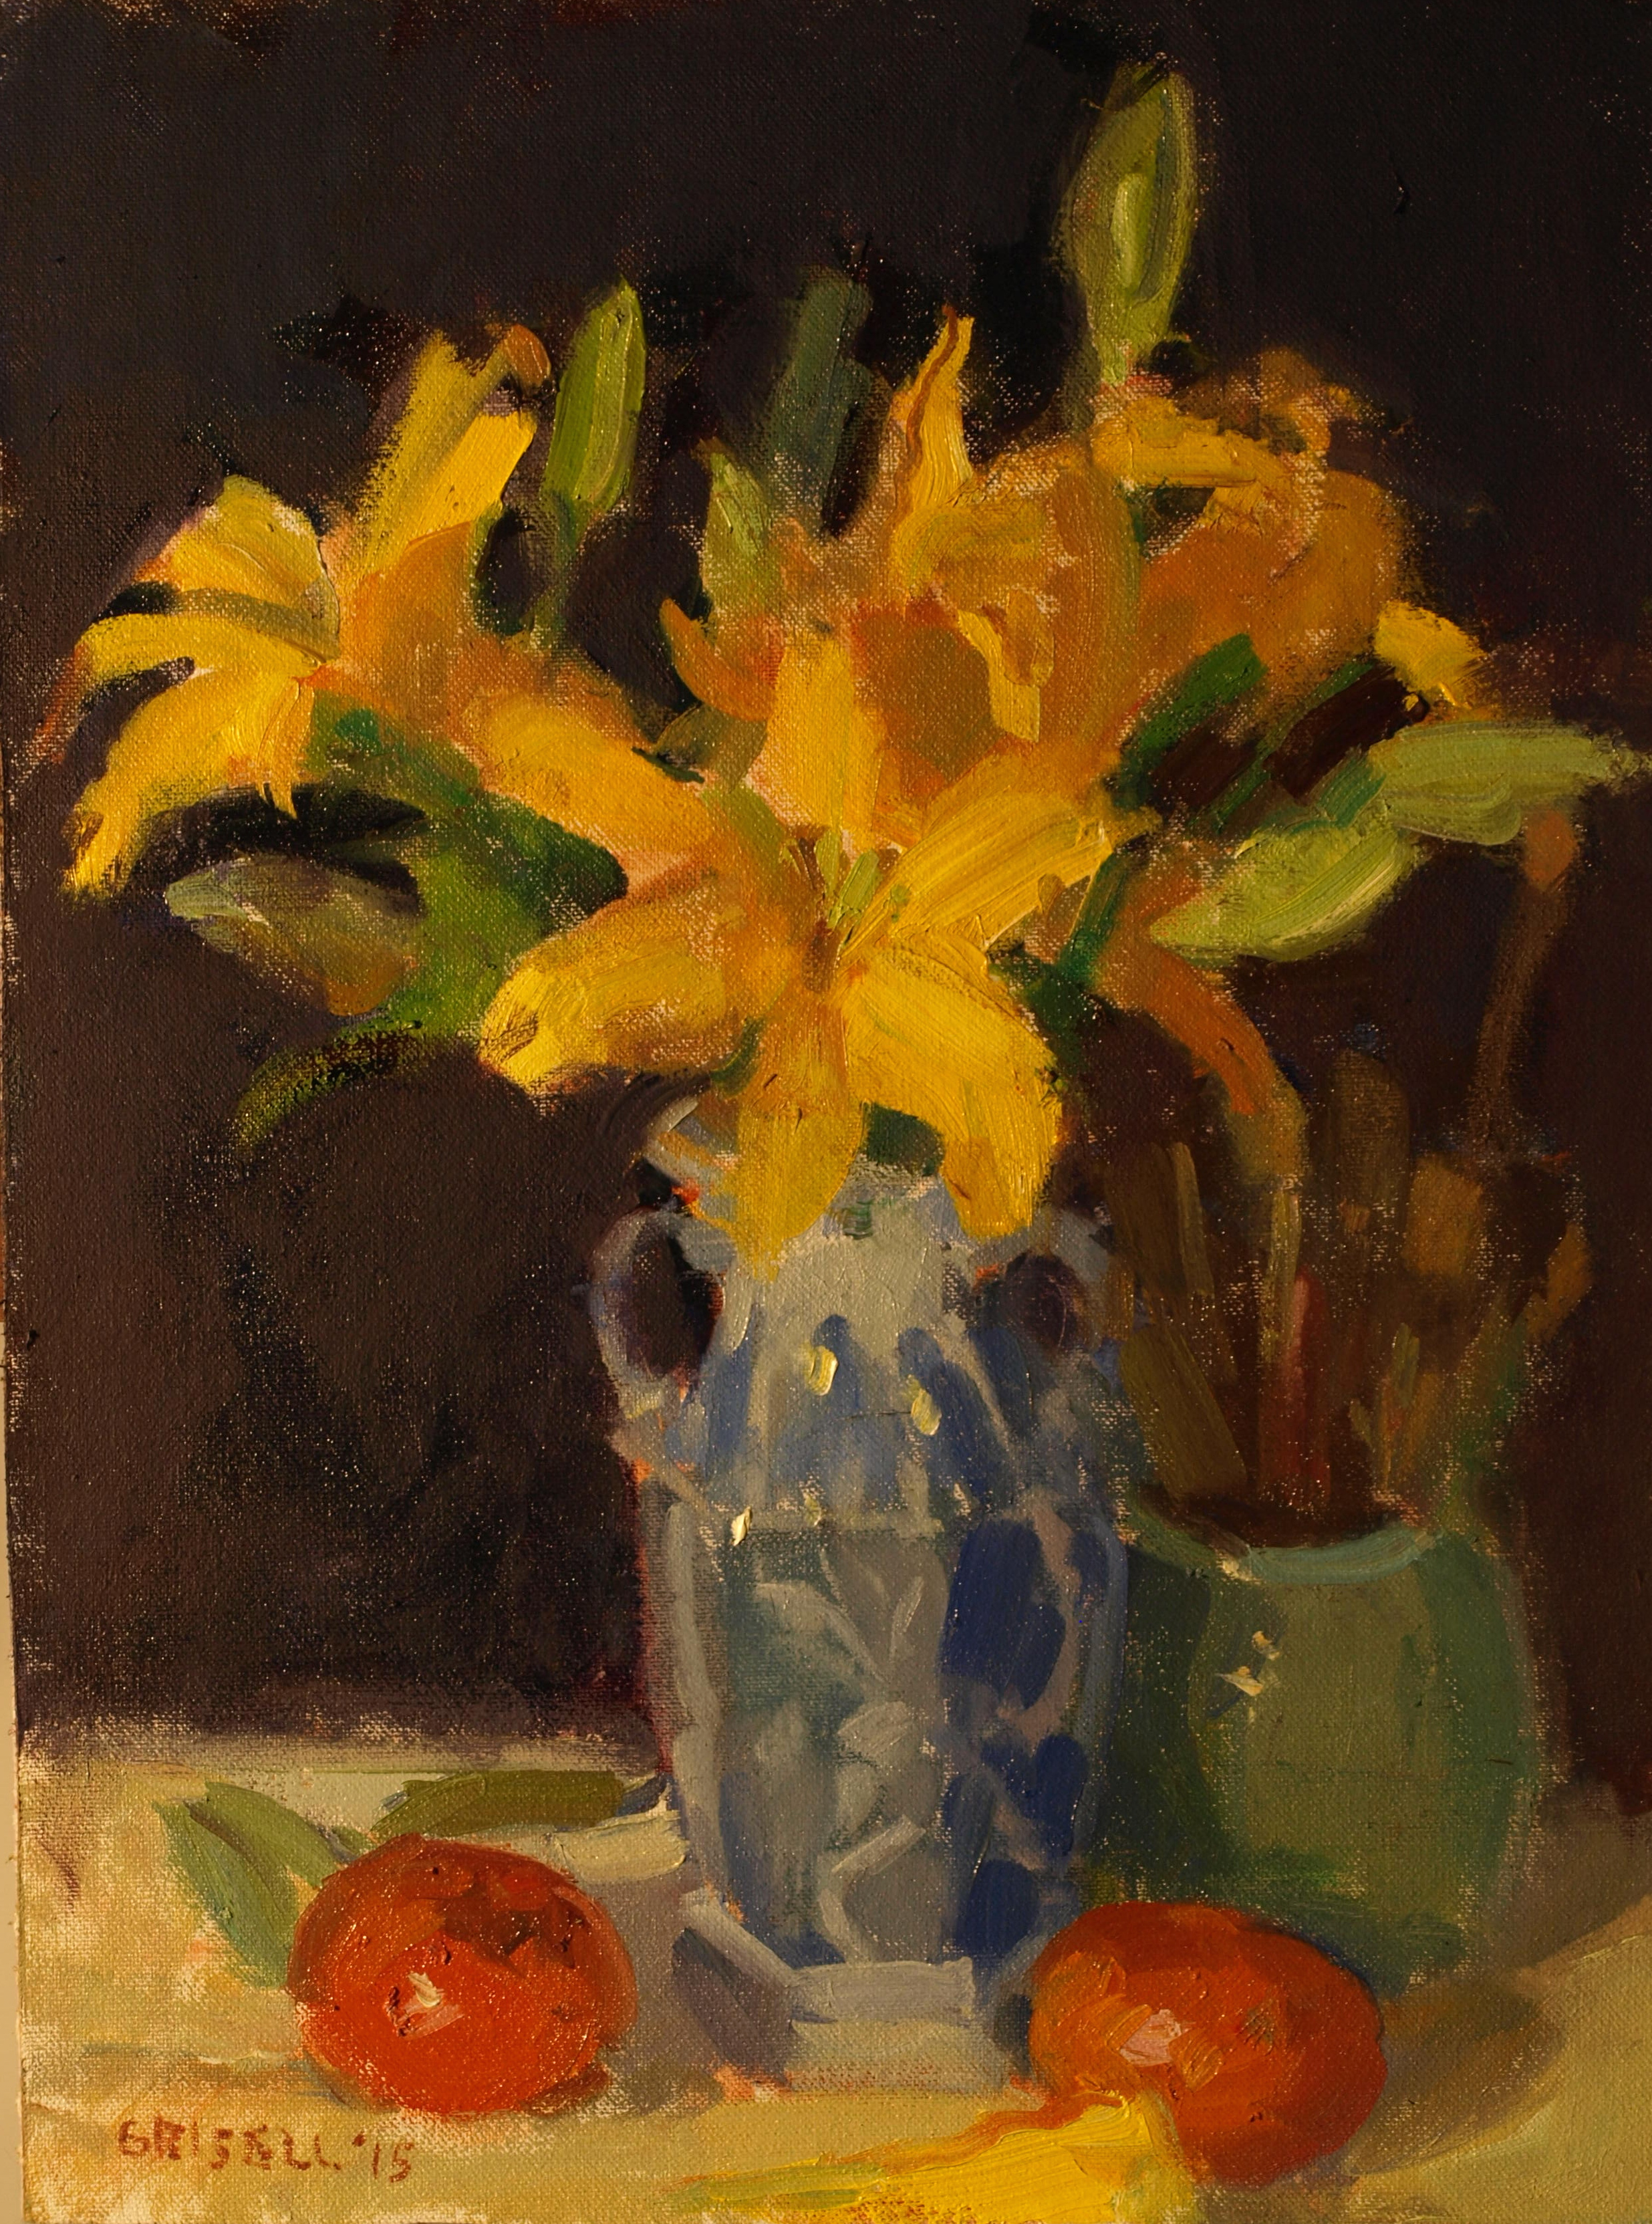 Lilies and Mandarins, Oil on Canvas on Panel, 16 x 12 Inches, by Susan Grisell, $300